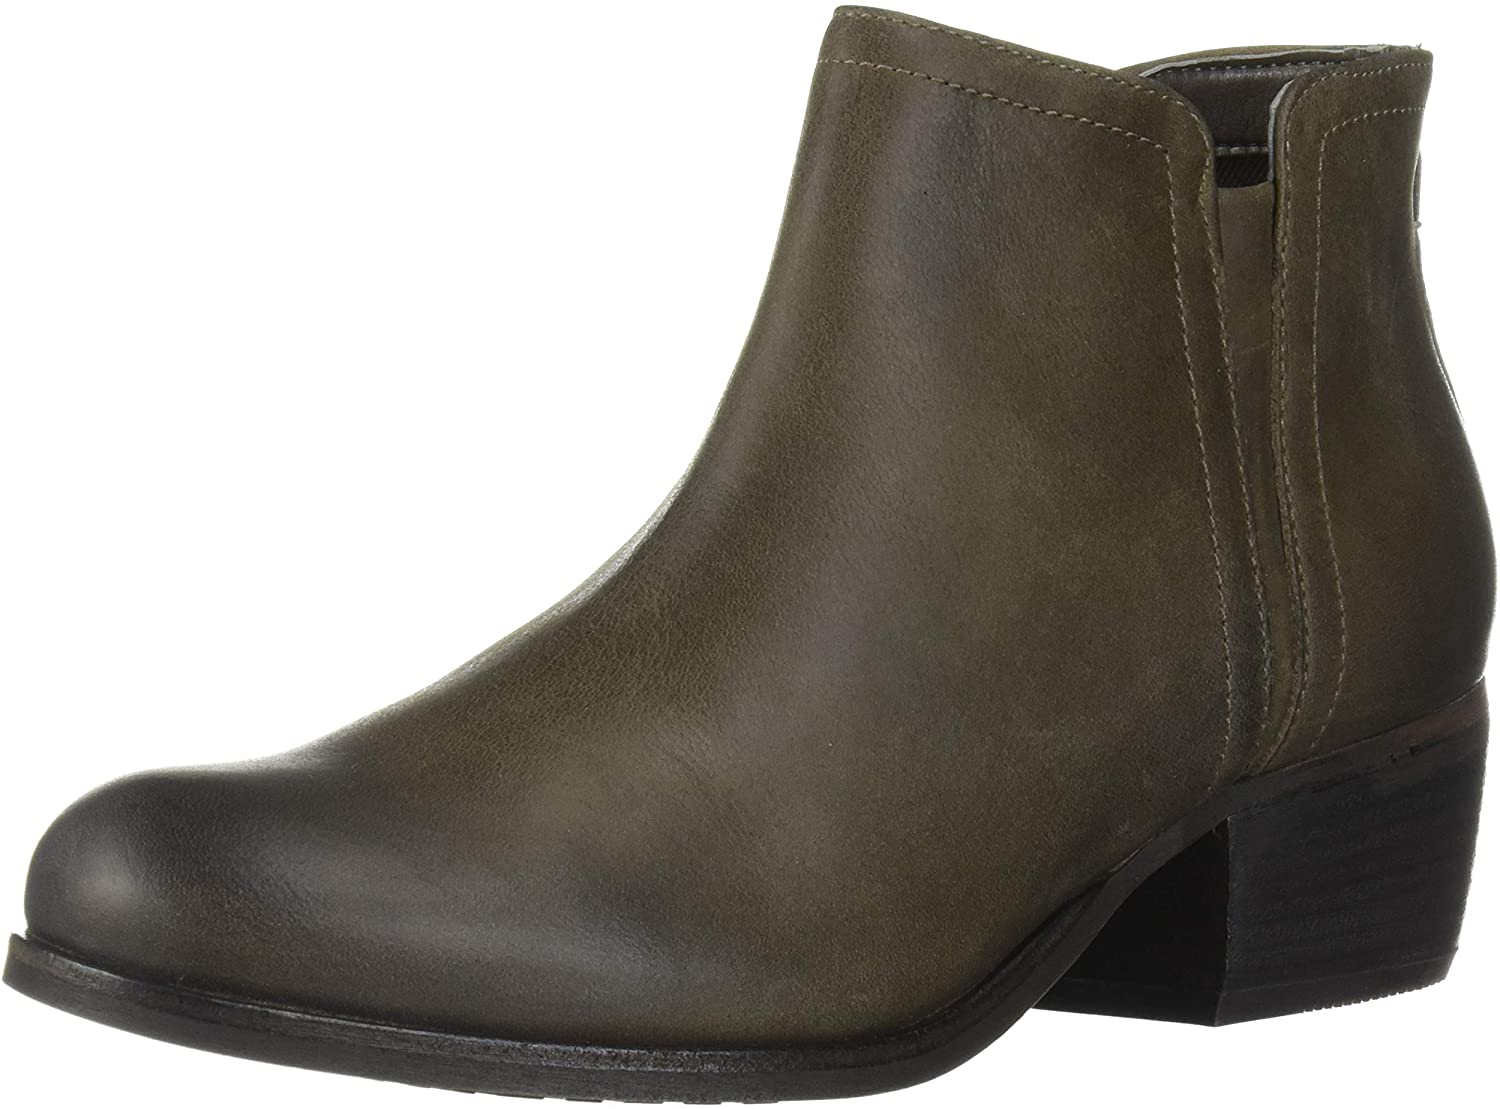 Clarks Now free OFFer shipping Women's Maypearl Ankle Bootie Ramie